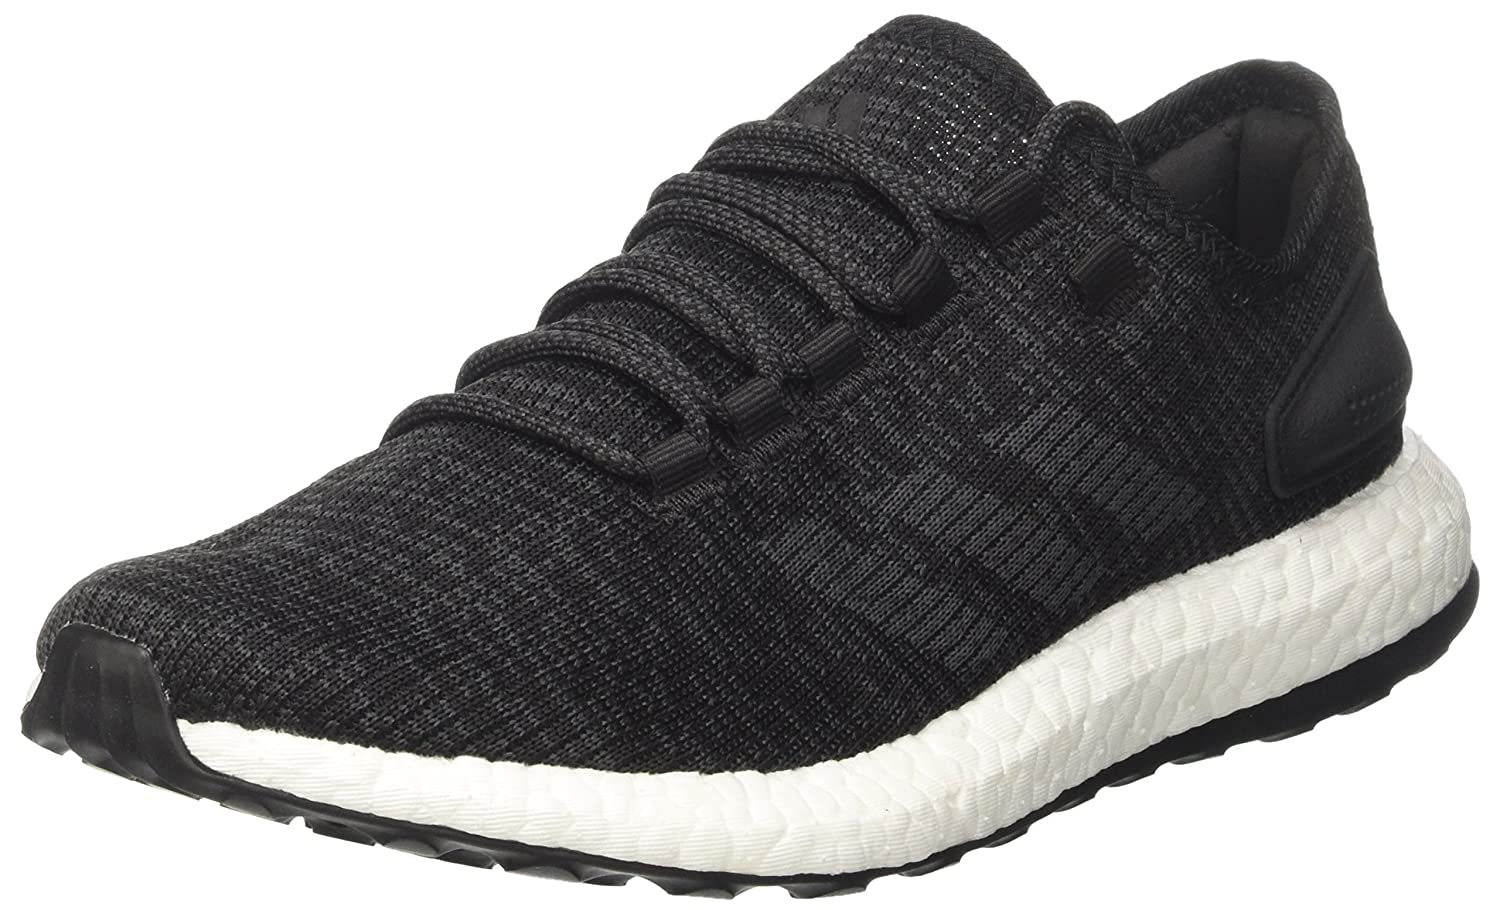 Adidas Ren Boost Menns Amazon a3XPjoF